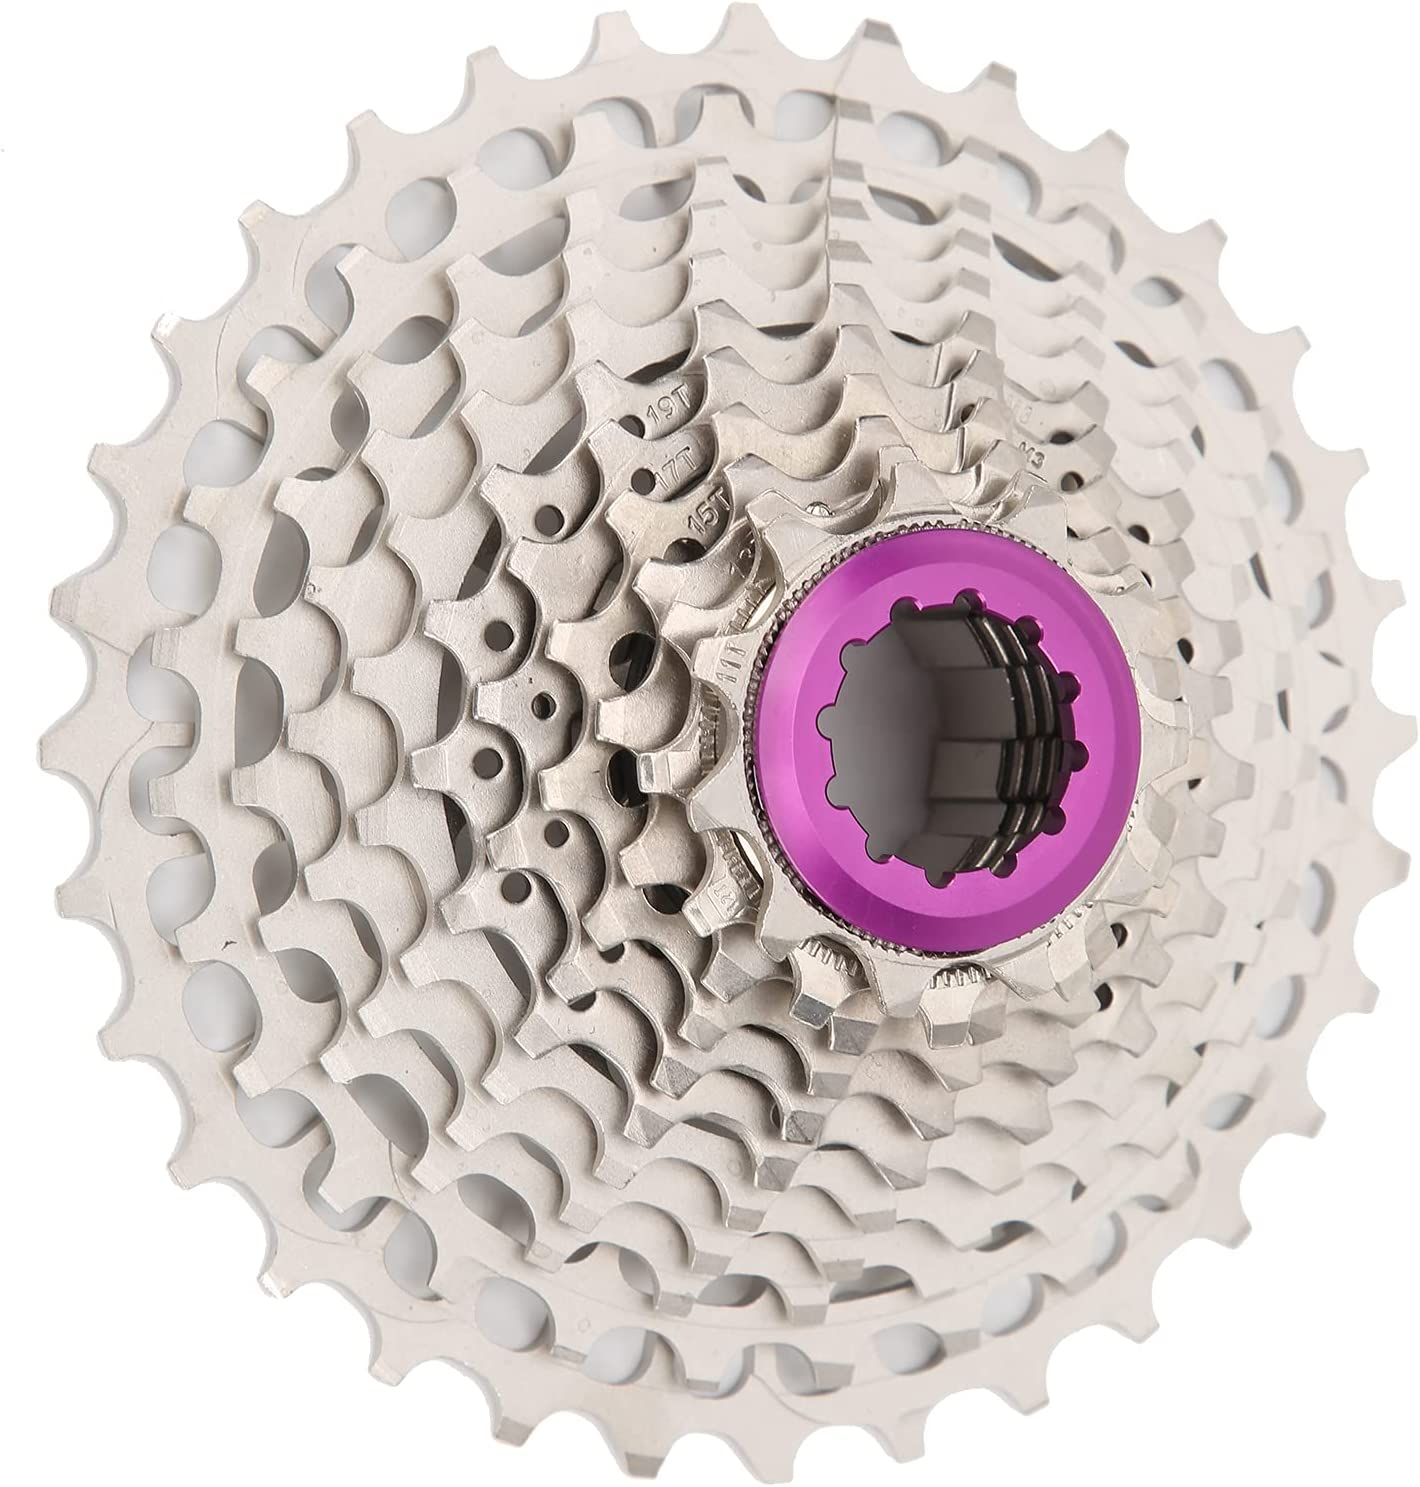 Ranvo Bicycle Freewheel Cassette Time sale Speed Max 61% OFF Abrasion Resist